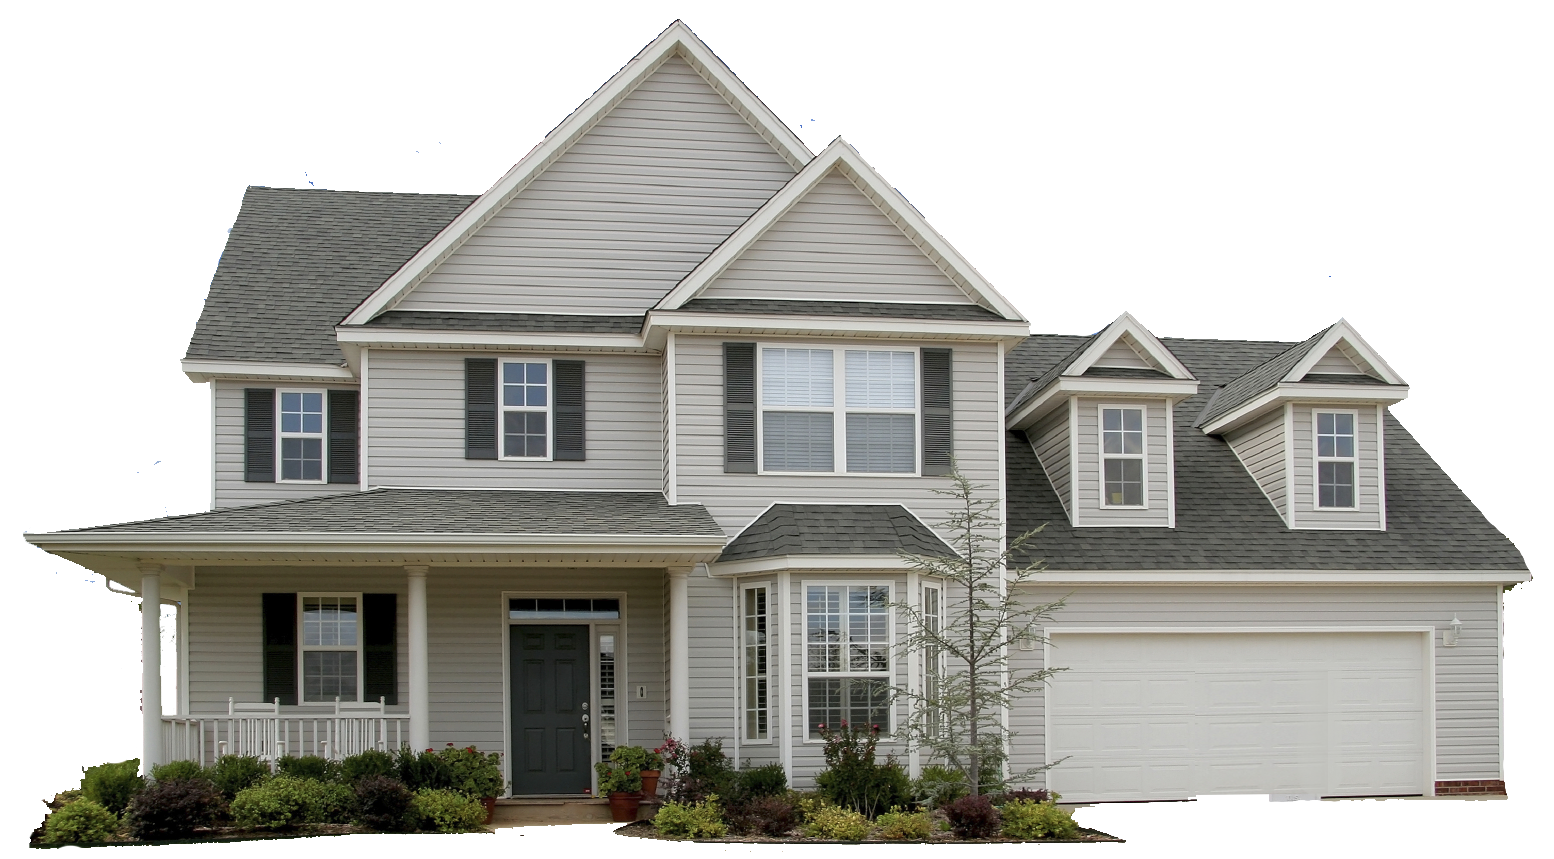 Houses PNG HD - 144557